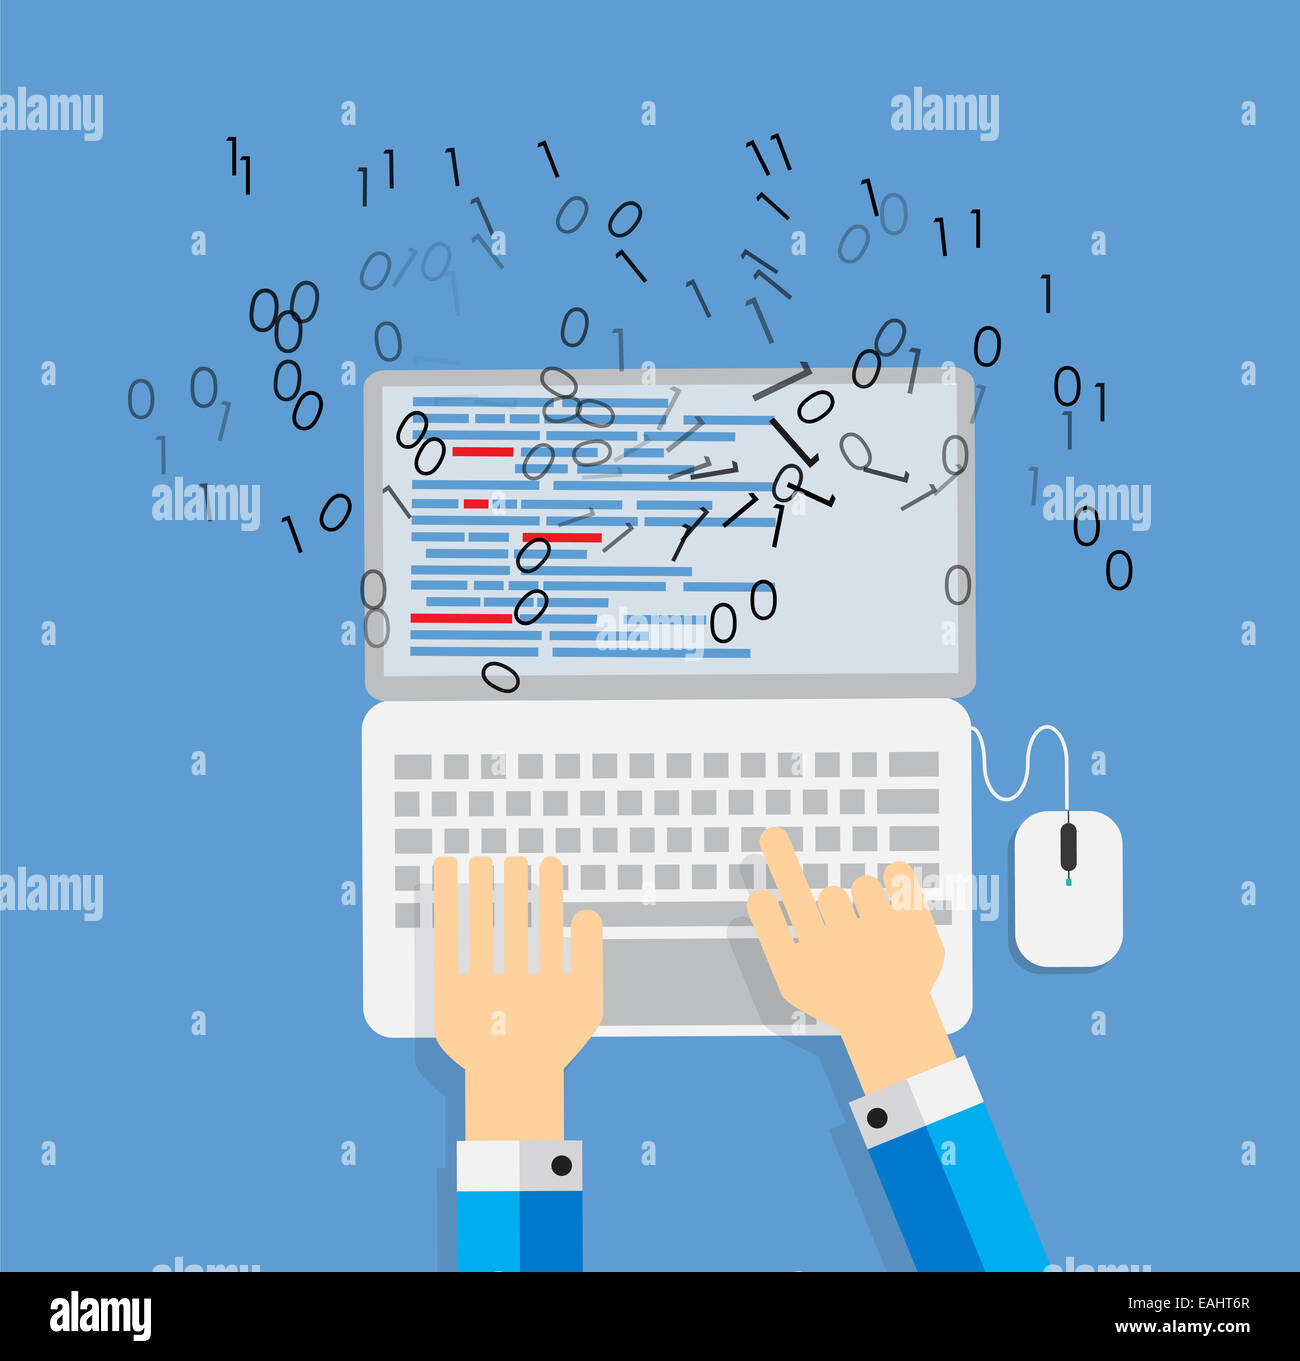 Programming Coding Flat Concept Vector Illustration - Stock Image